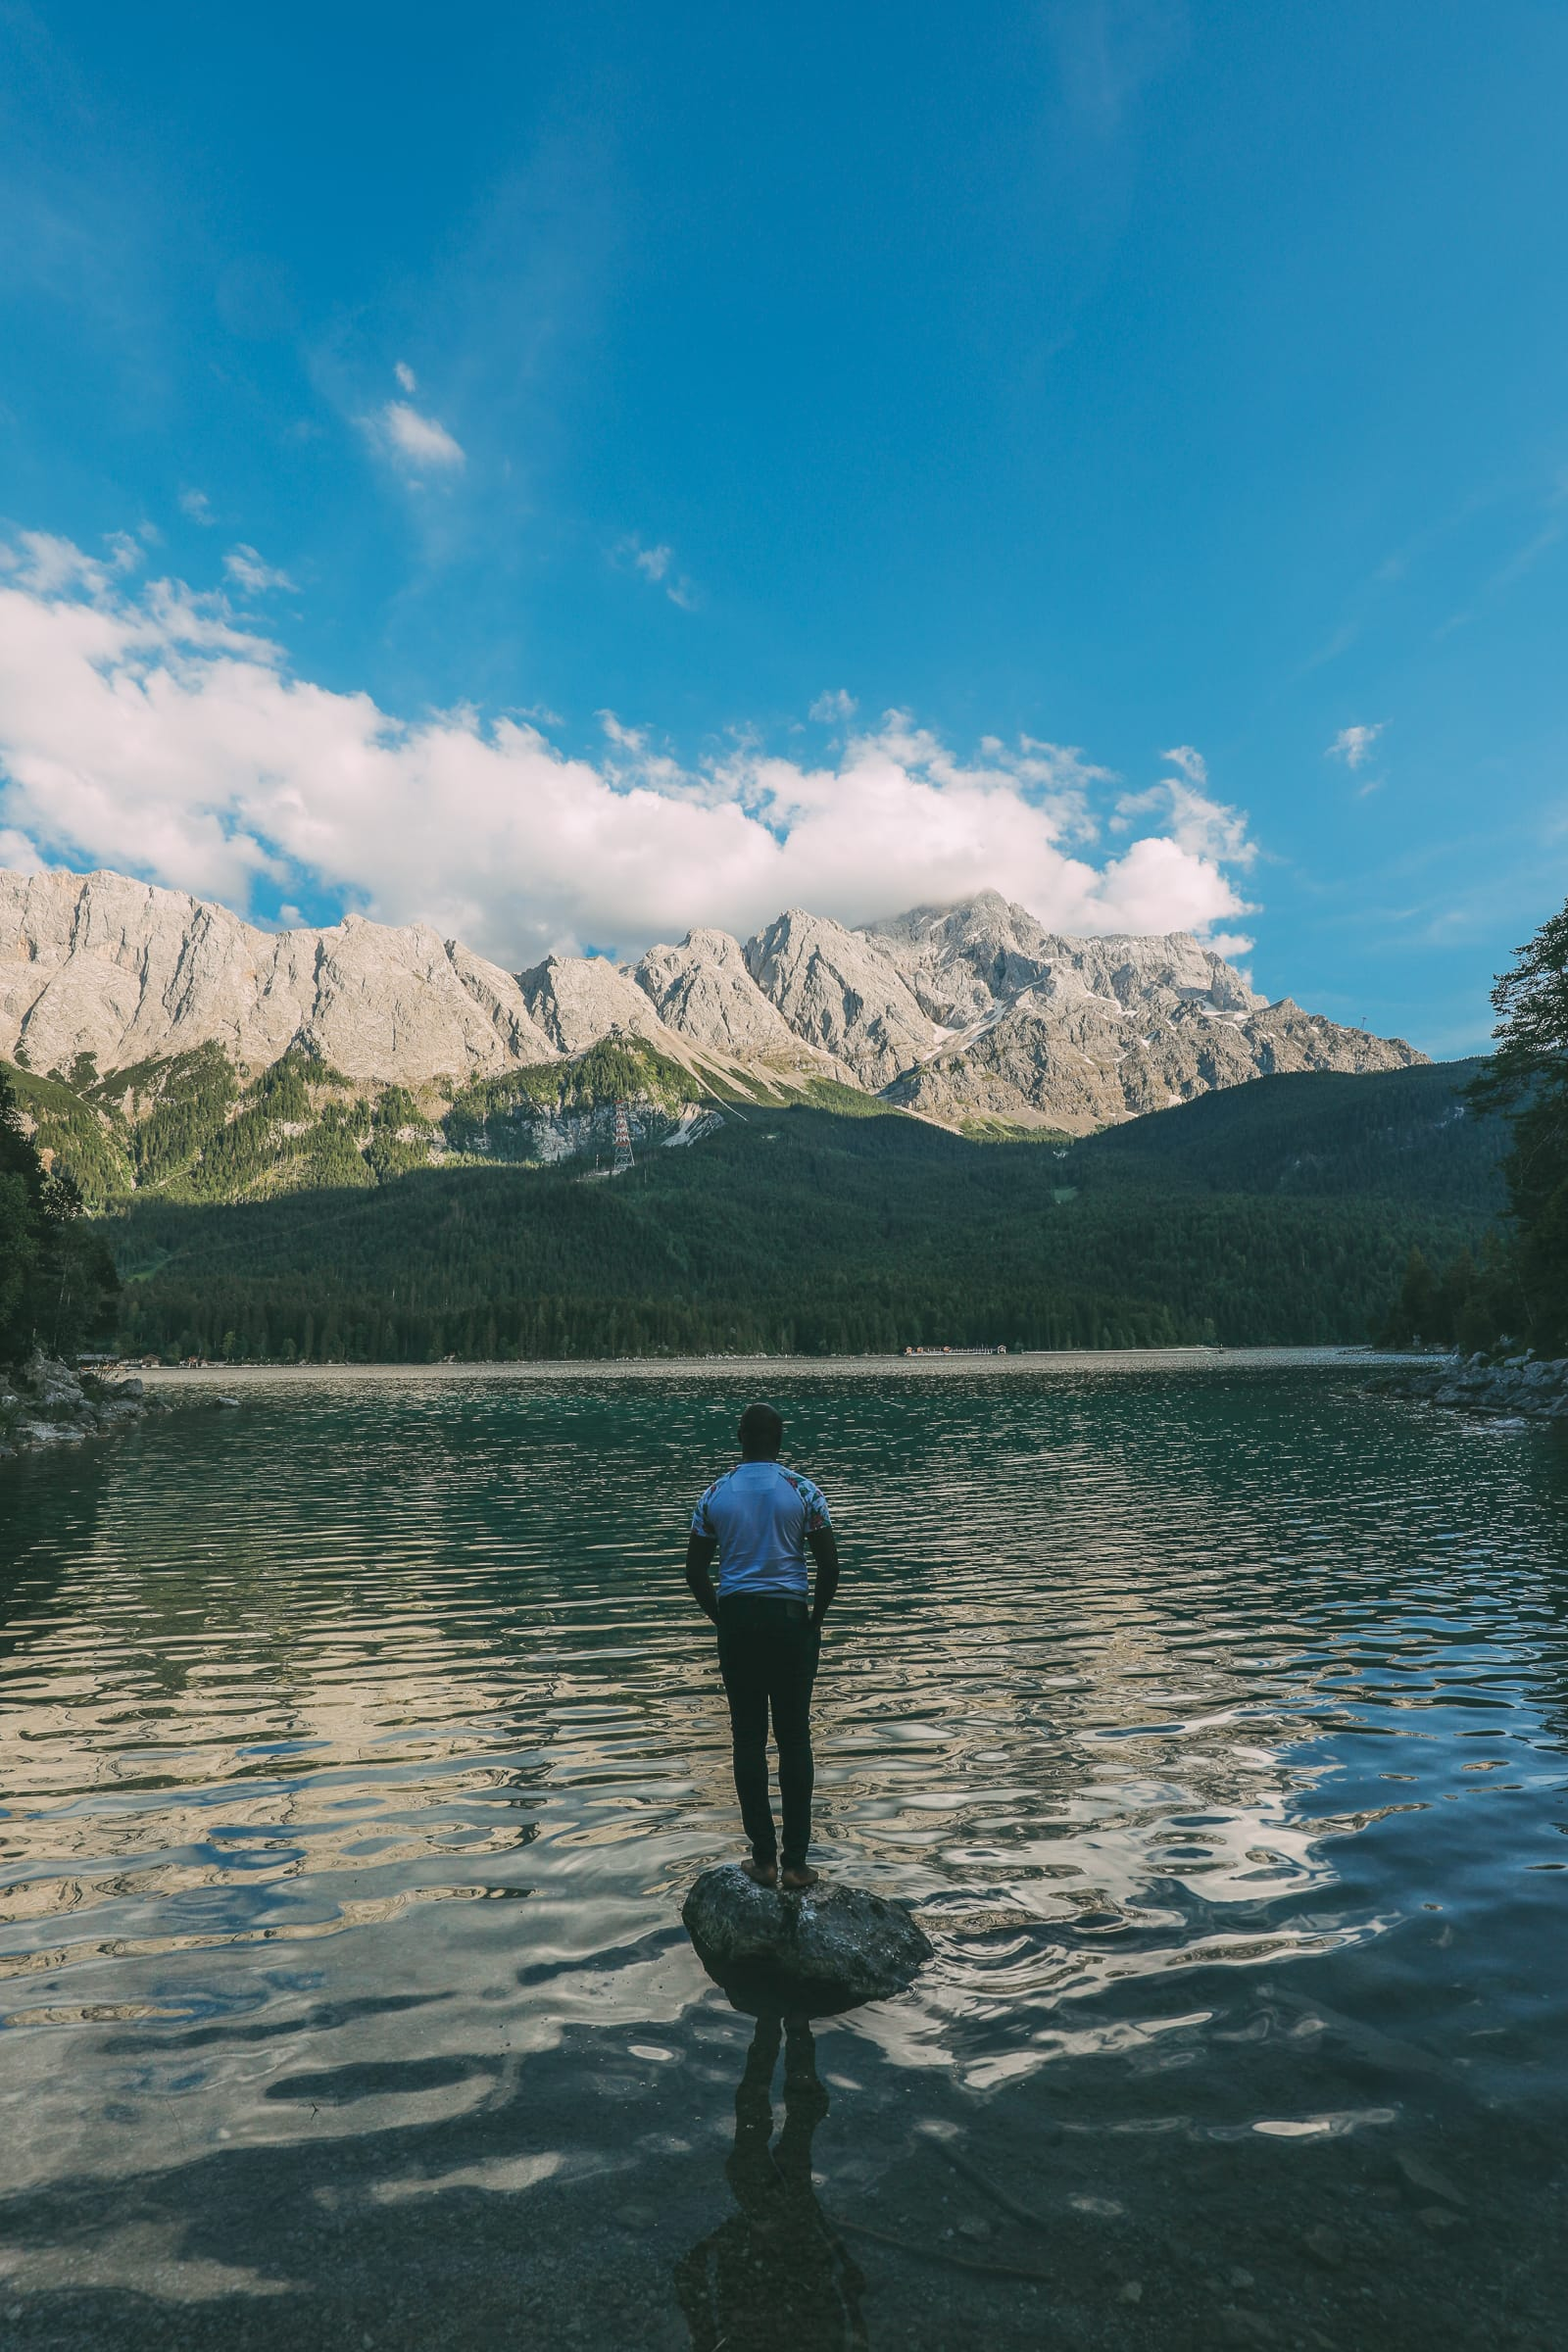 Zugspitze And Eibsee - The Tallest Mountain And One Of The Most Beautiful Lakes In Germany! (33)